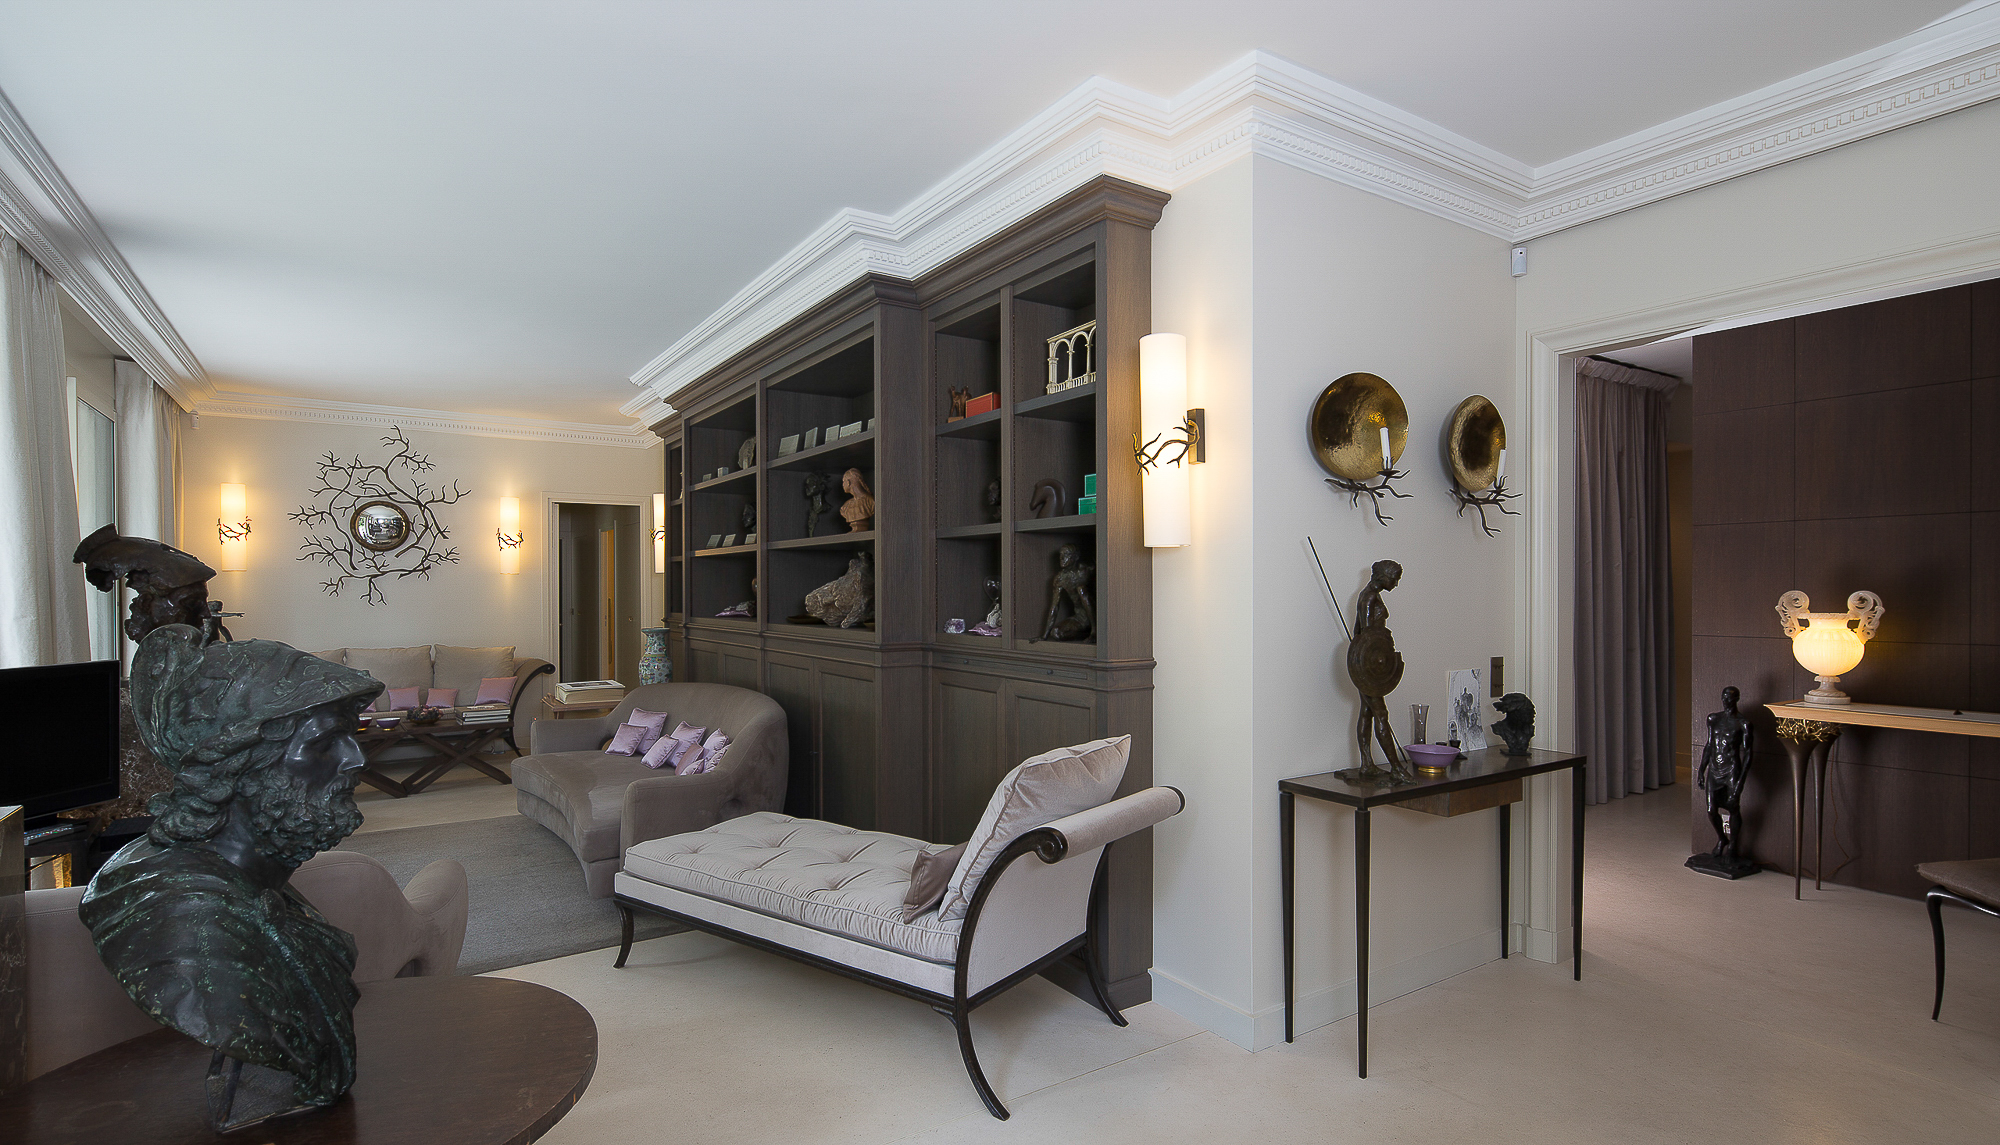 decoration interieure lozach architecture paris nantes. Black Bedroom Furniture Sets. Home Design Ideas